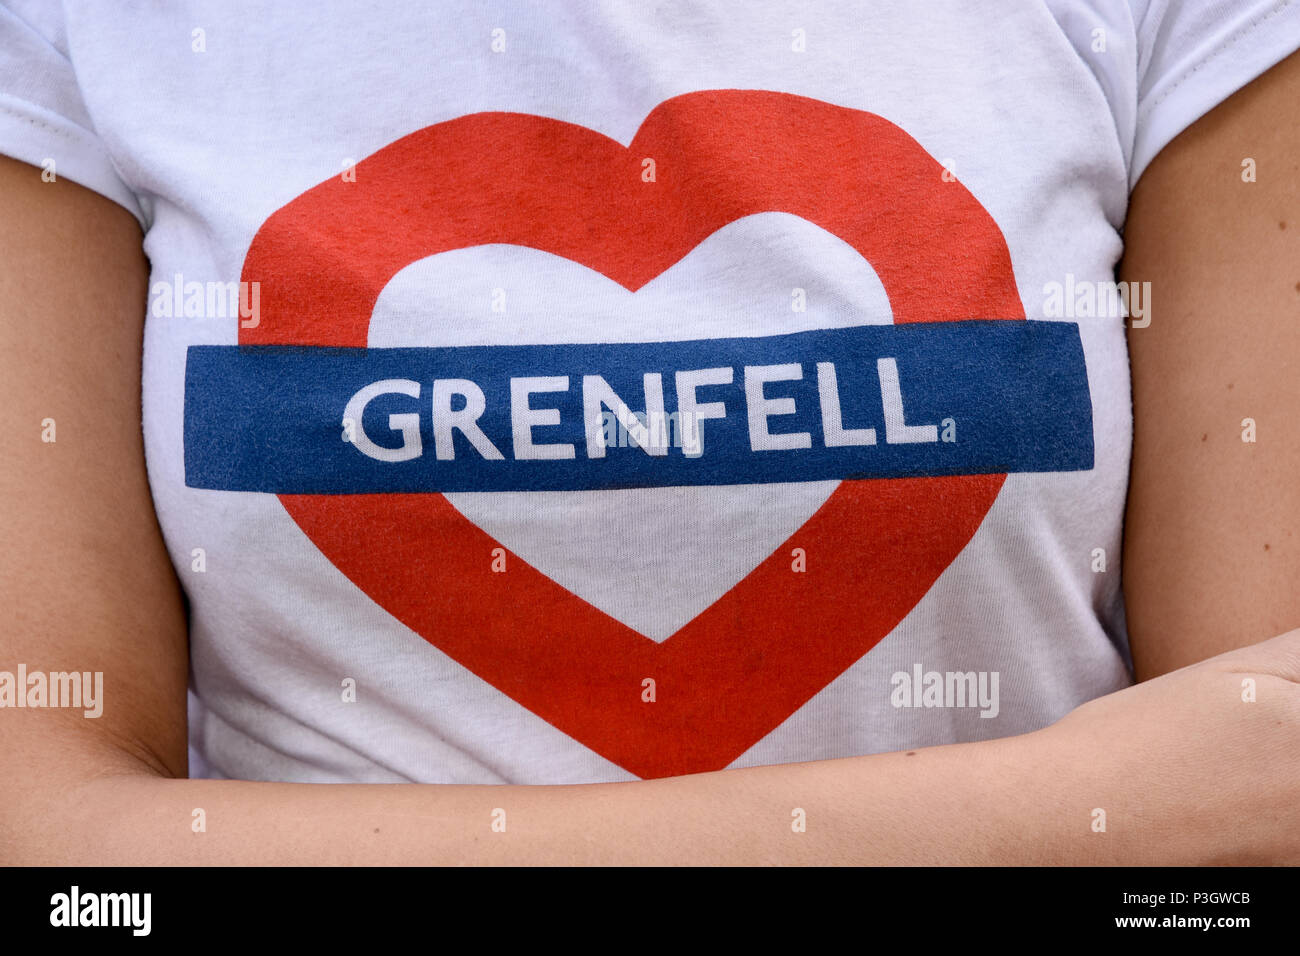 Justice for Grenfell - Solidarity March to show support for relatives and friends of those affected by the Grenfell Tower Block Fire,London.UK - Stock Image